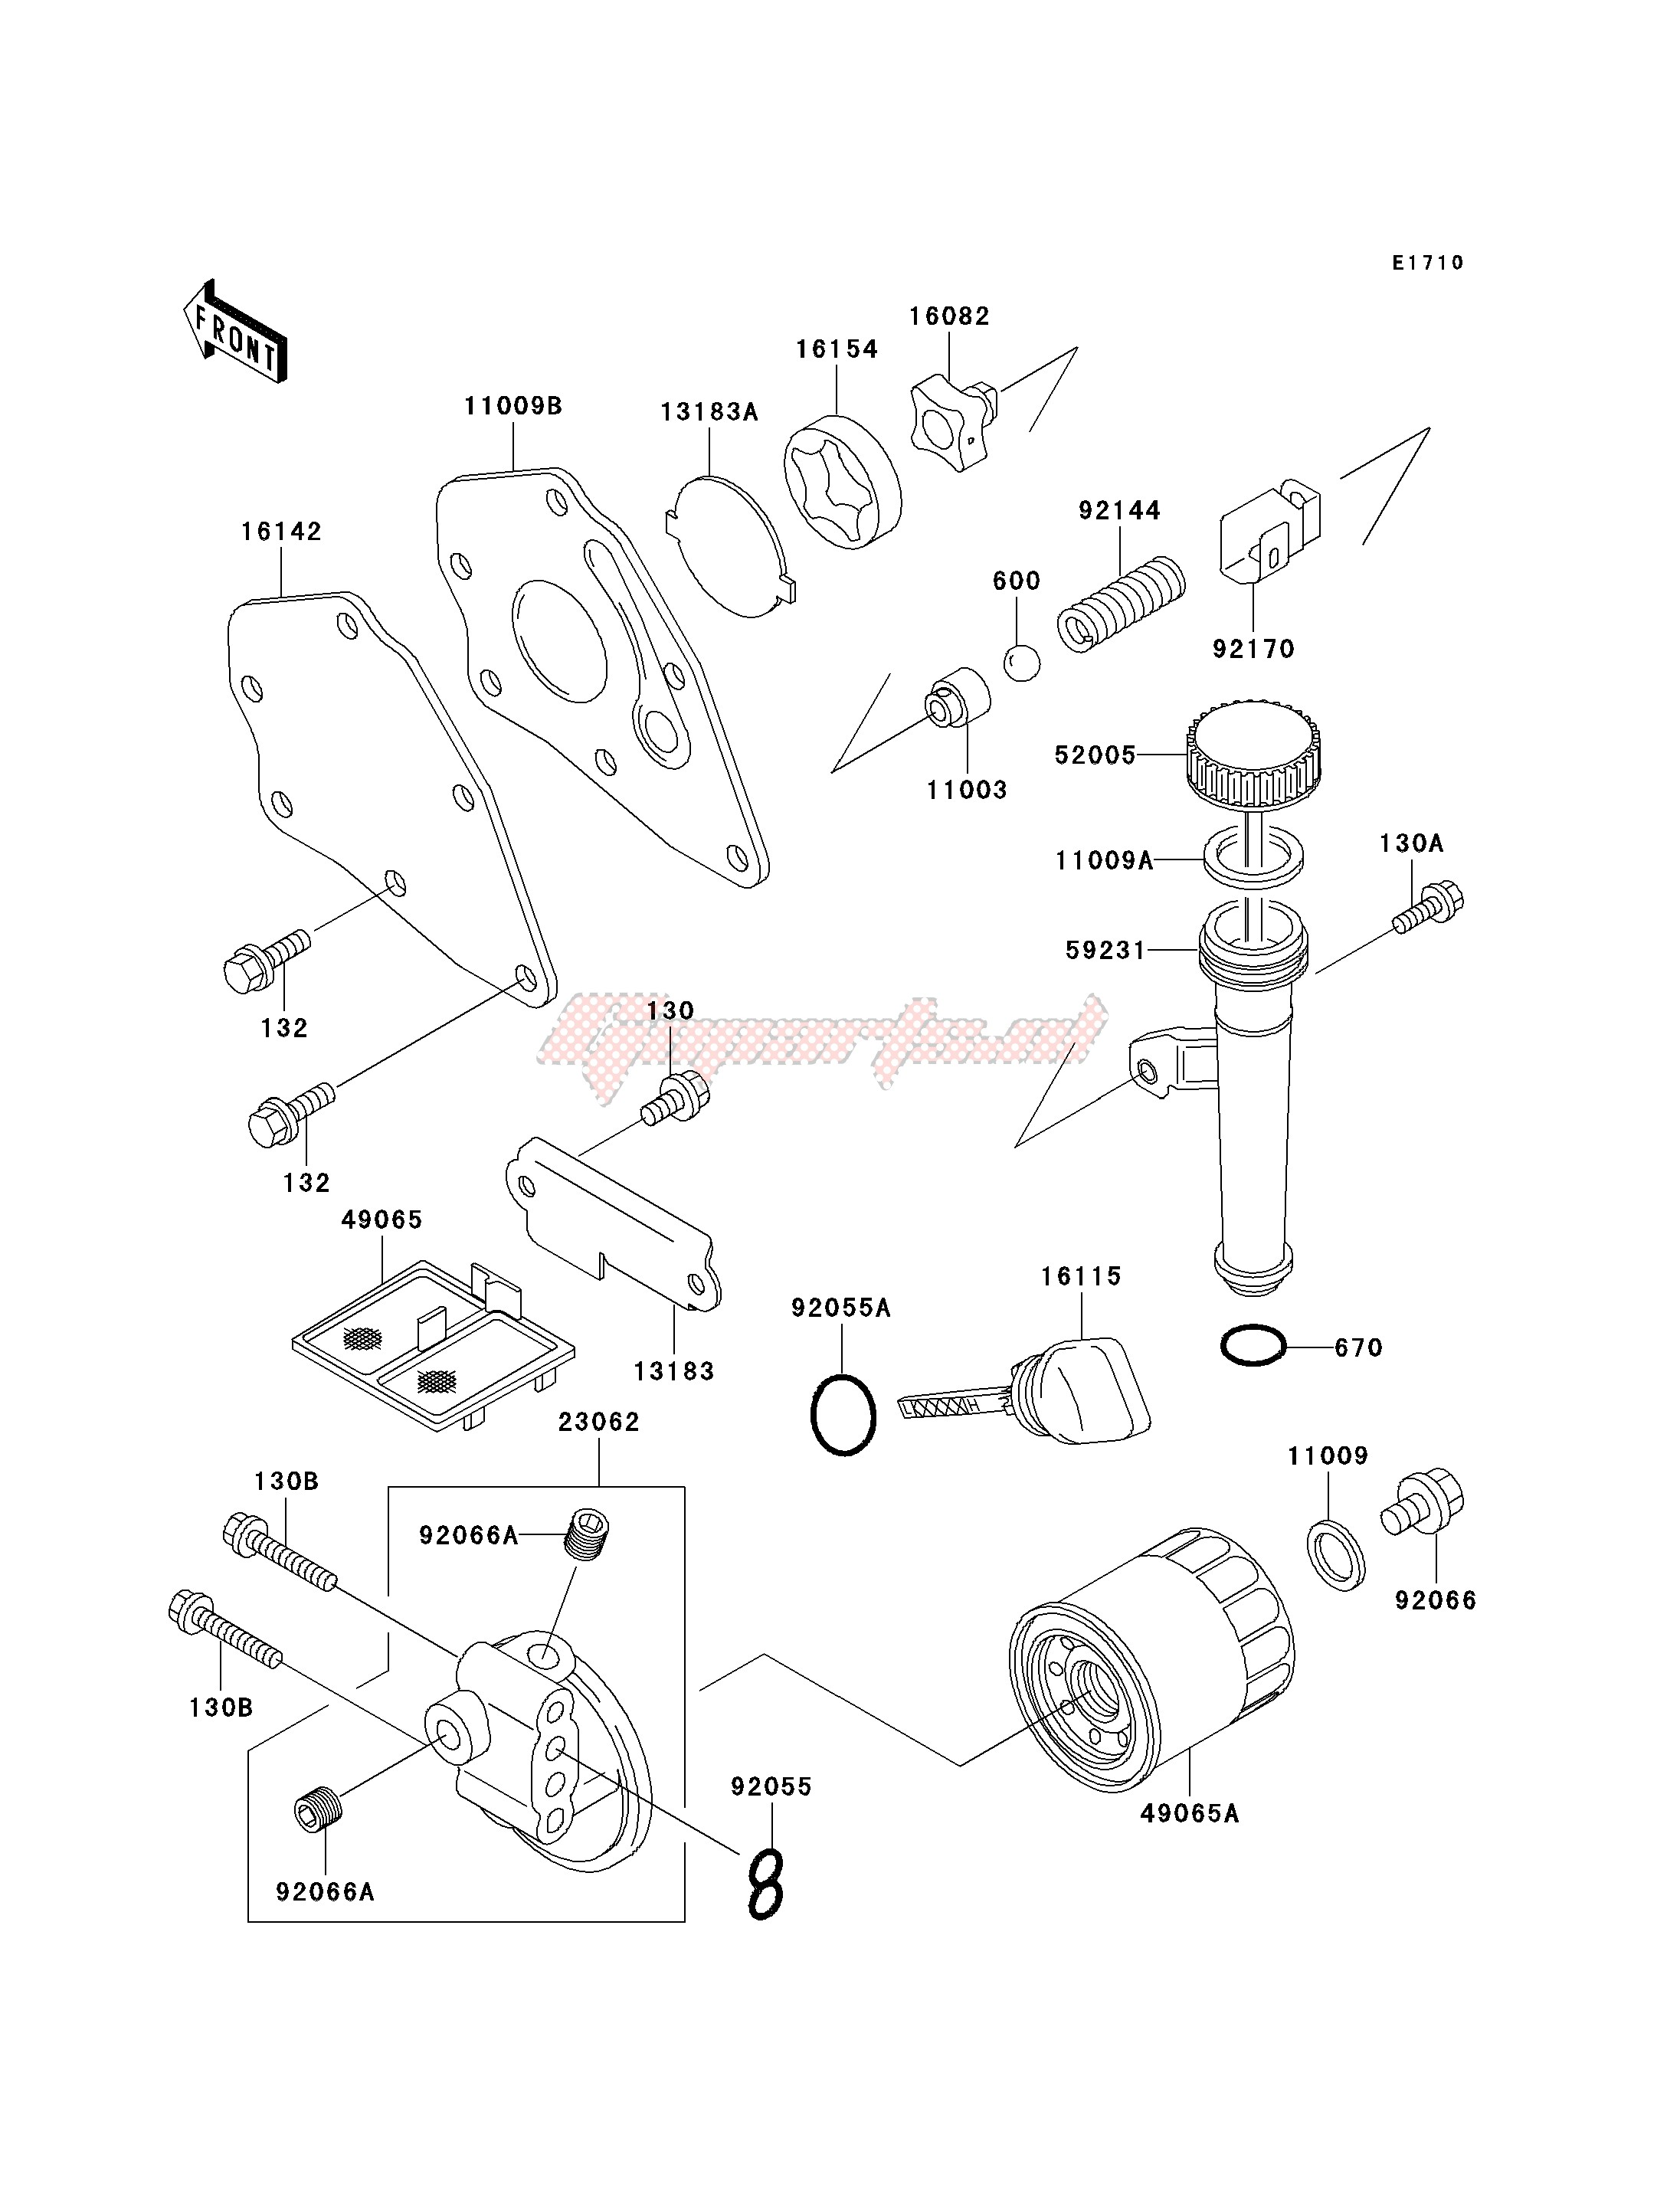 Engine-OIL PUMP_OIL FILTER